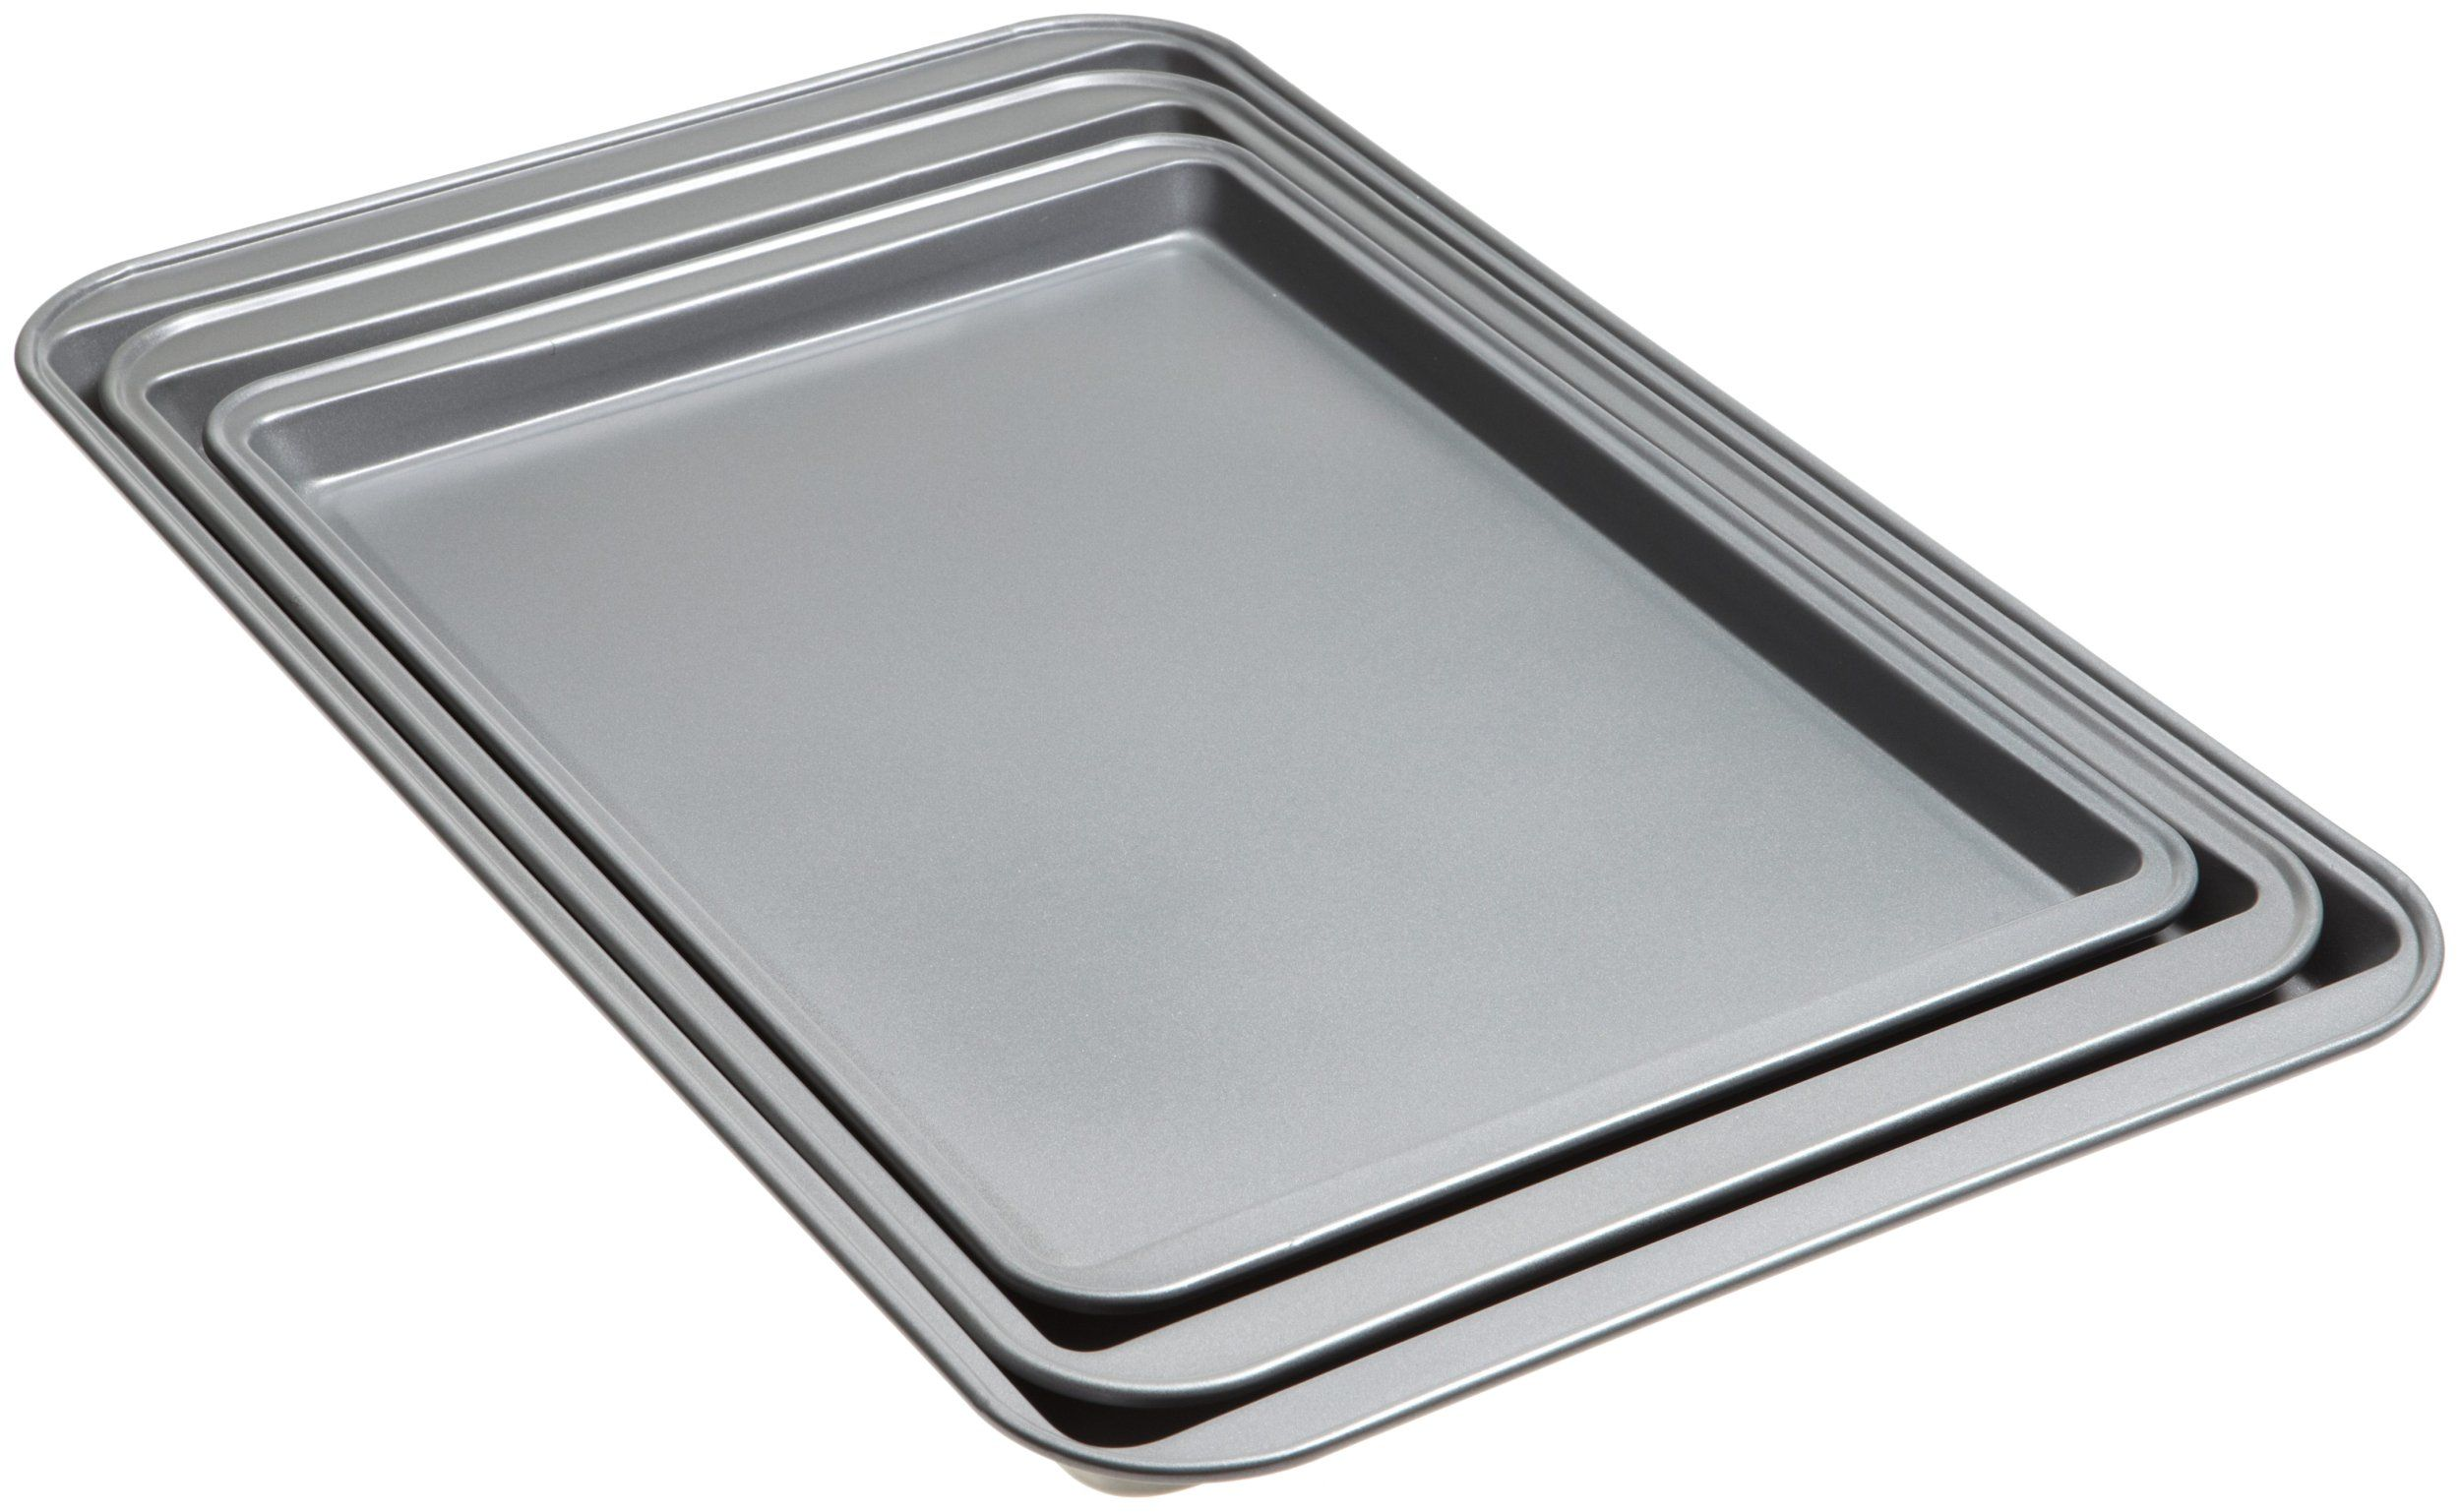 Good Cook Set Of 3 Non Stick Cookie Sheets And 2 Cooling Racks